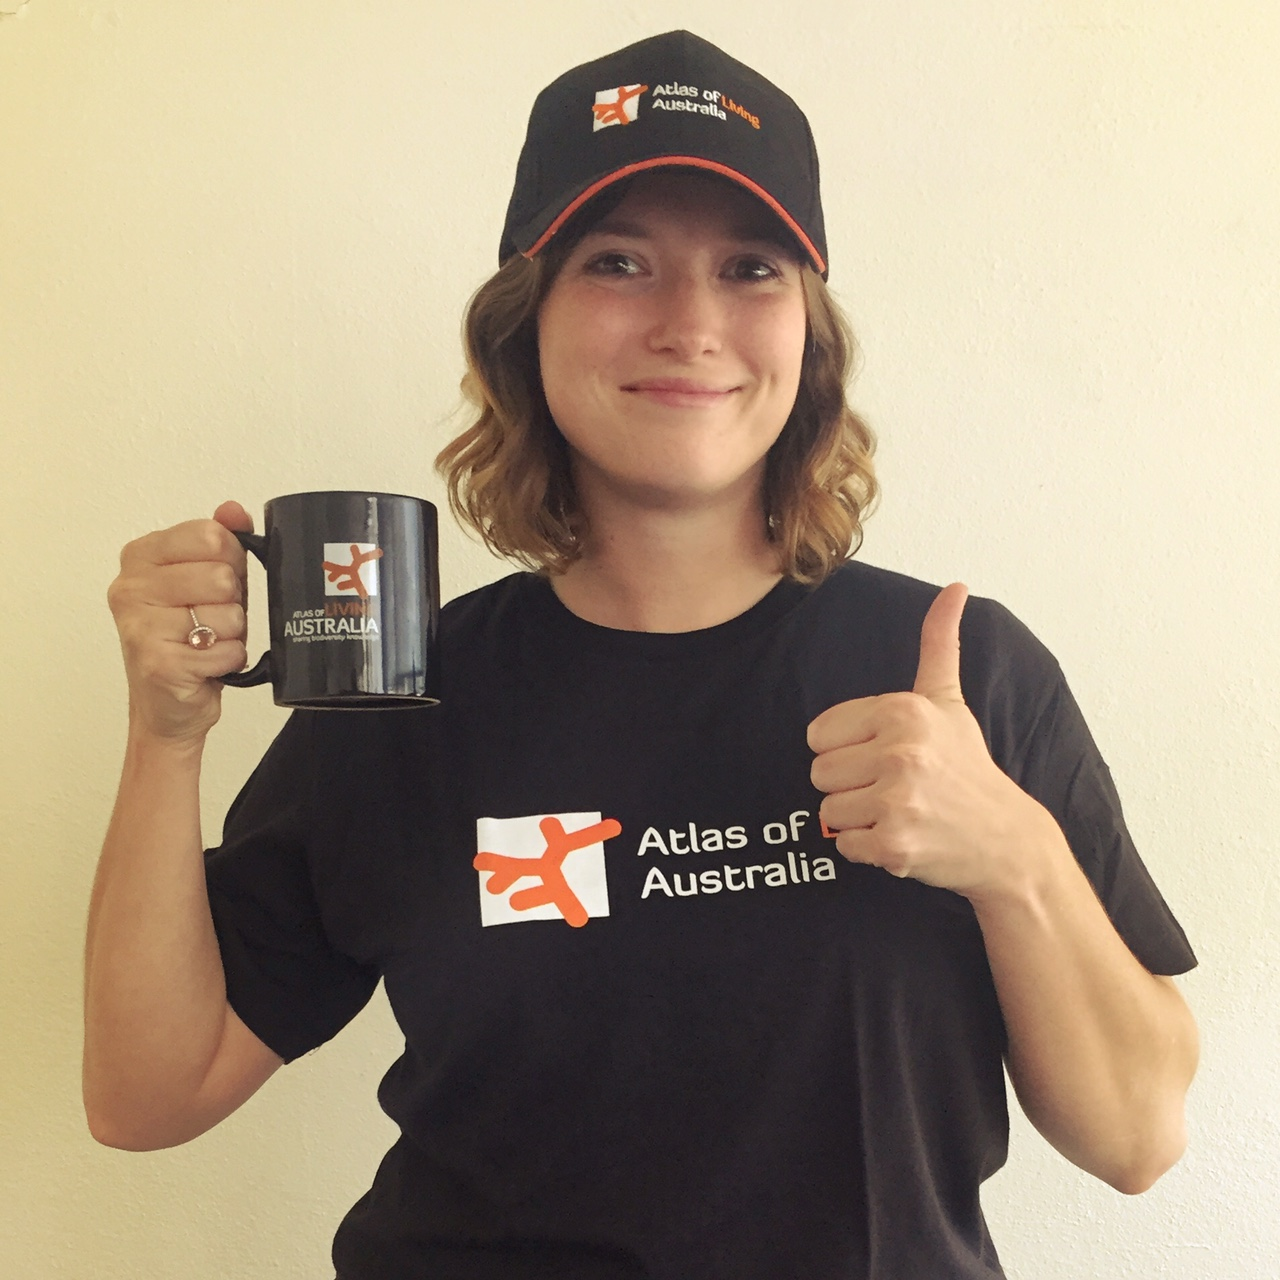 Orange, white, and black is the new black! Complete the survey for your chance to win an ALA prize pack - a must for any wardrobe!